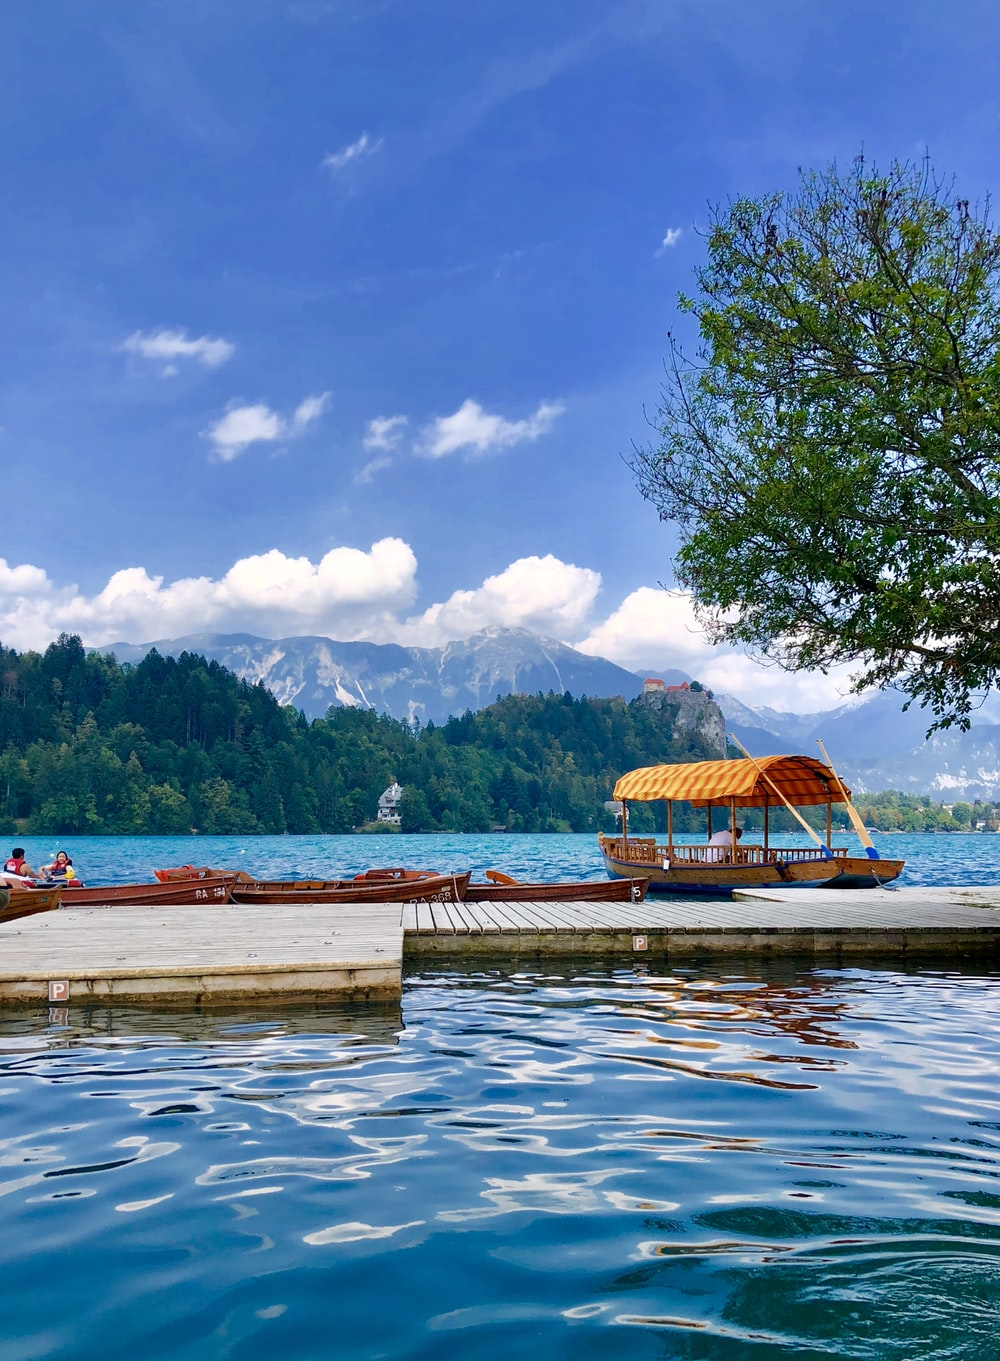 brown wooden dock on lake near green mountain under blue sky and white clouds during daytime